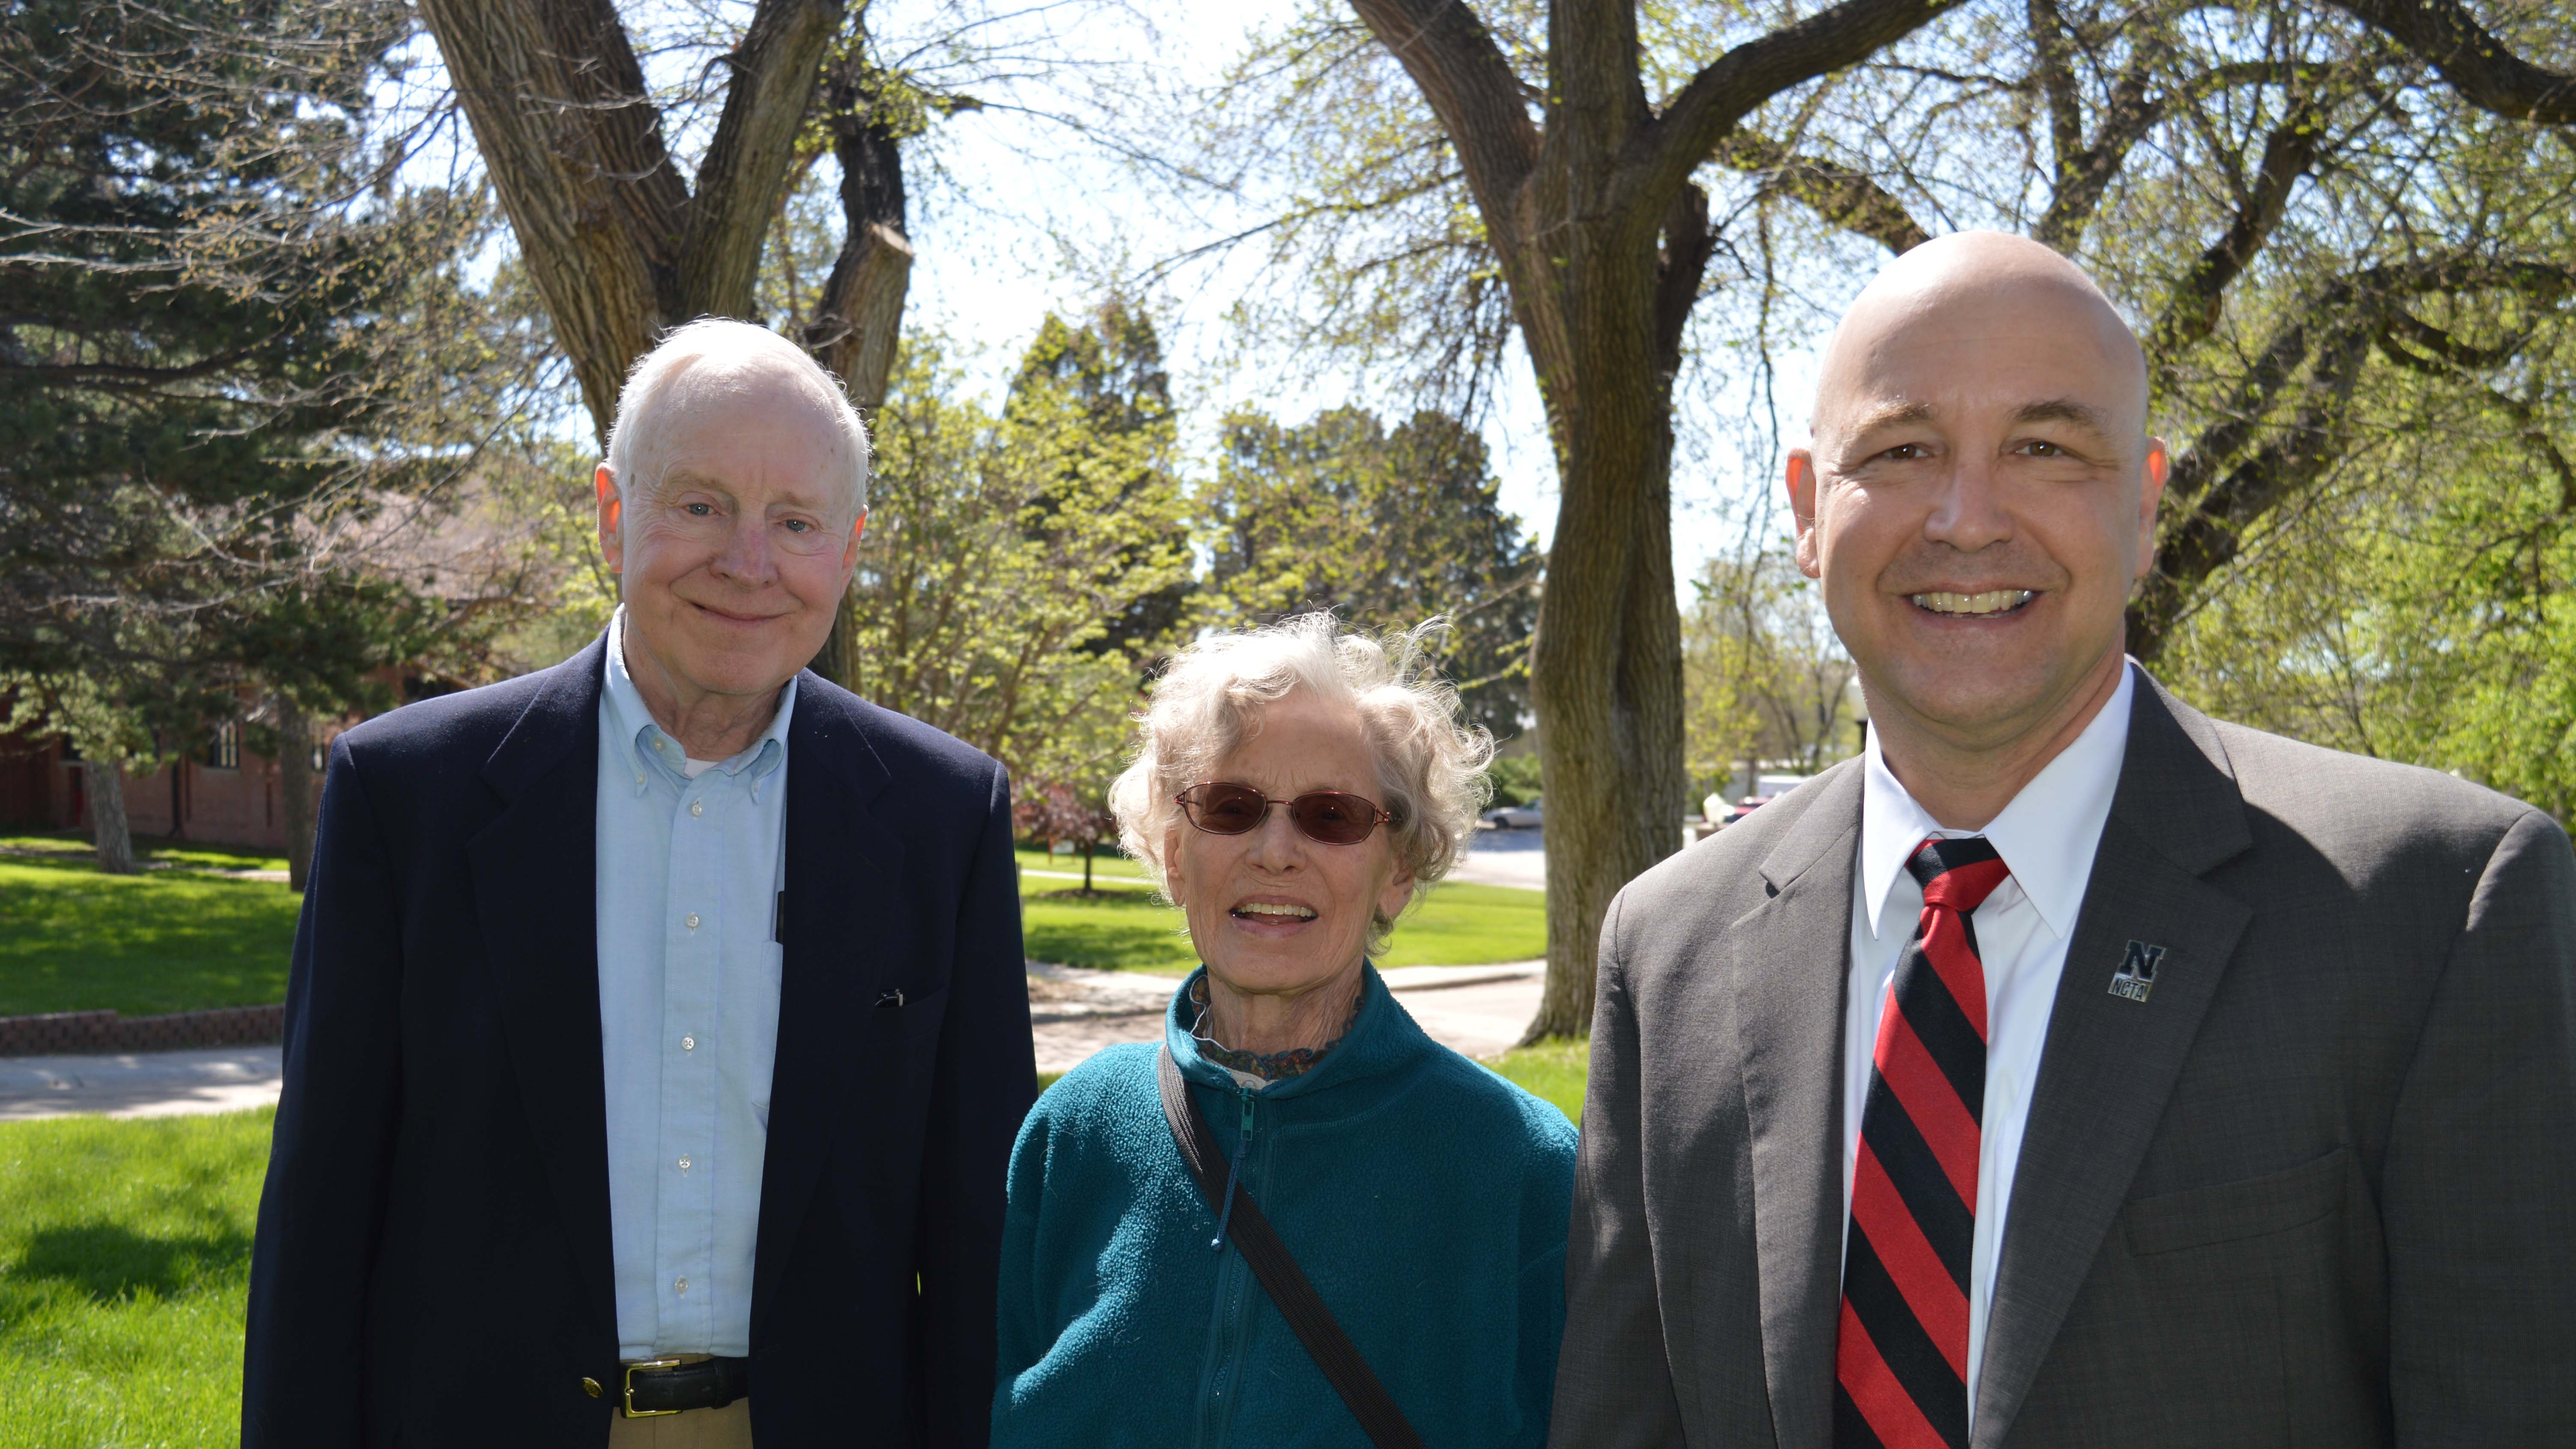 David and Sande Scholz, then of Salida, Colo., attended graduation at the Nebraska College of Technical Agriculture in 2017. They greeted NU Vice President Mike Boehm at Ag Hall. Sande's vision was to give her family ranch to NCTA's educational mission. (Mary Crawford / NCTA News photo)